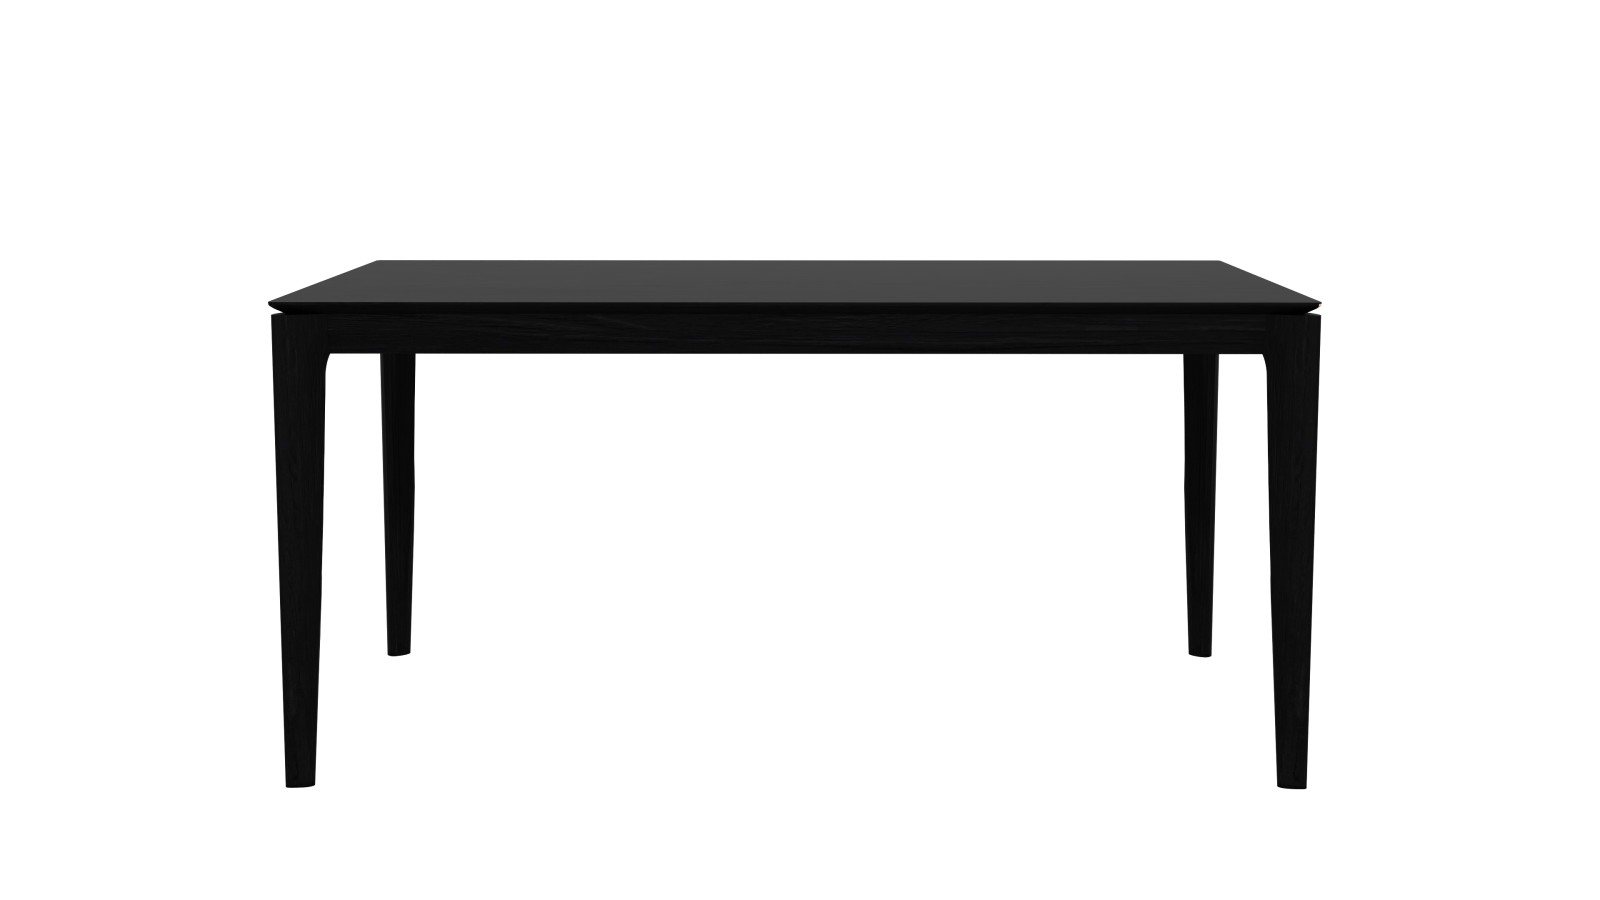 Bok dining table 160, Black